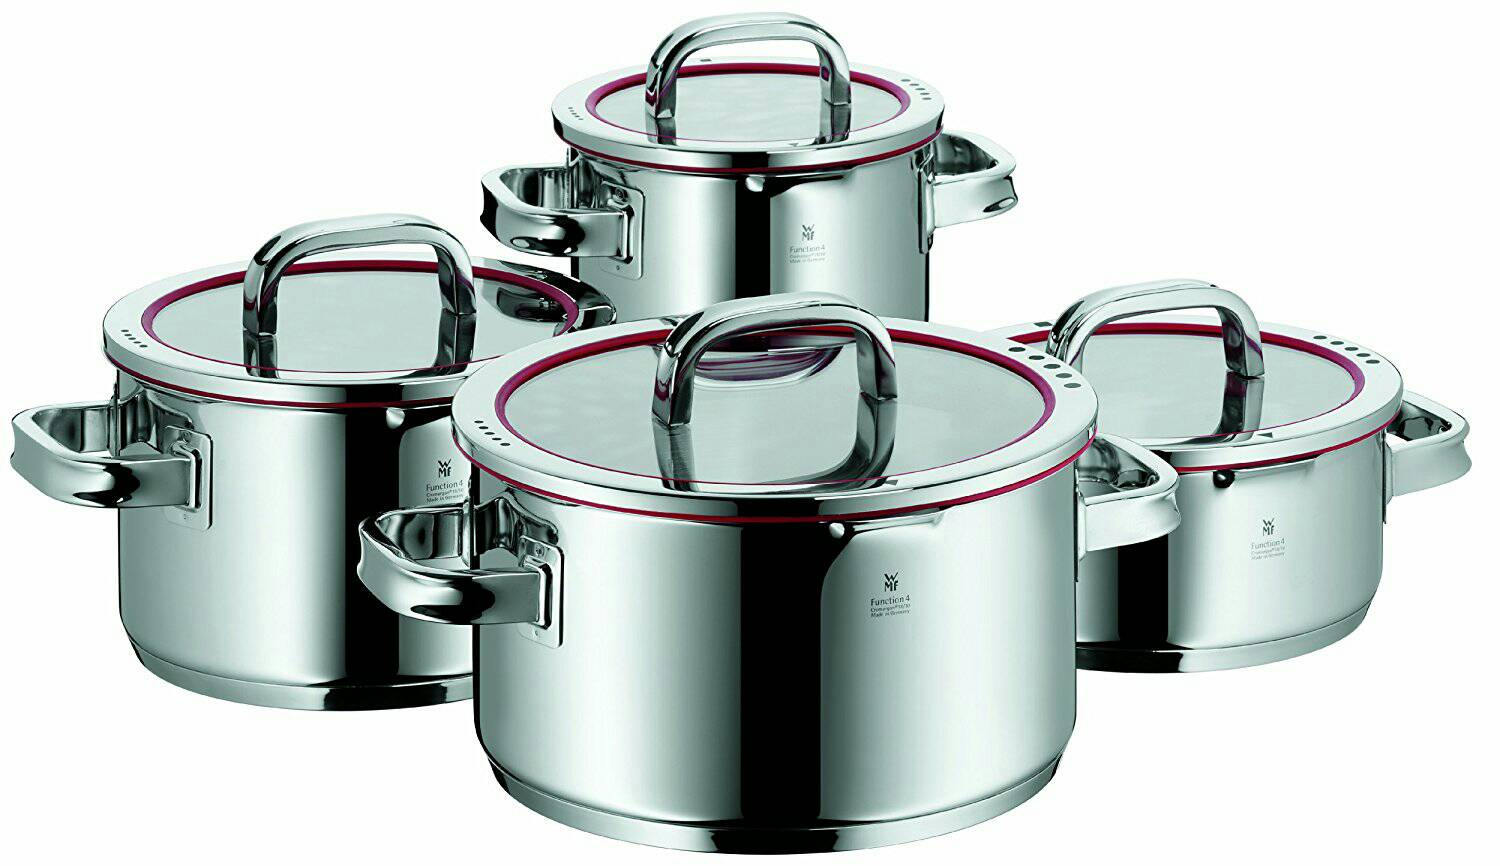 WMF Function 4 8 Piece Casserole Cookware WMF頂級Function 4 鍋具8件組